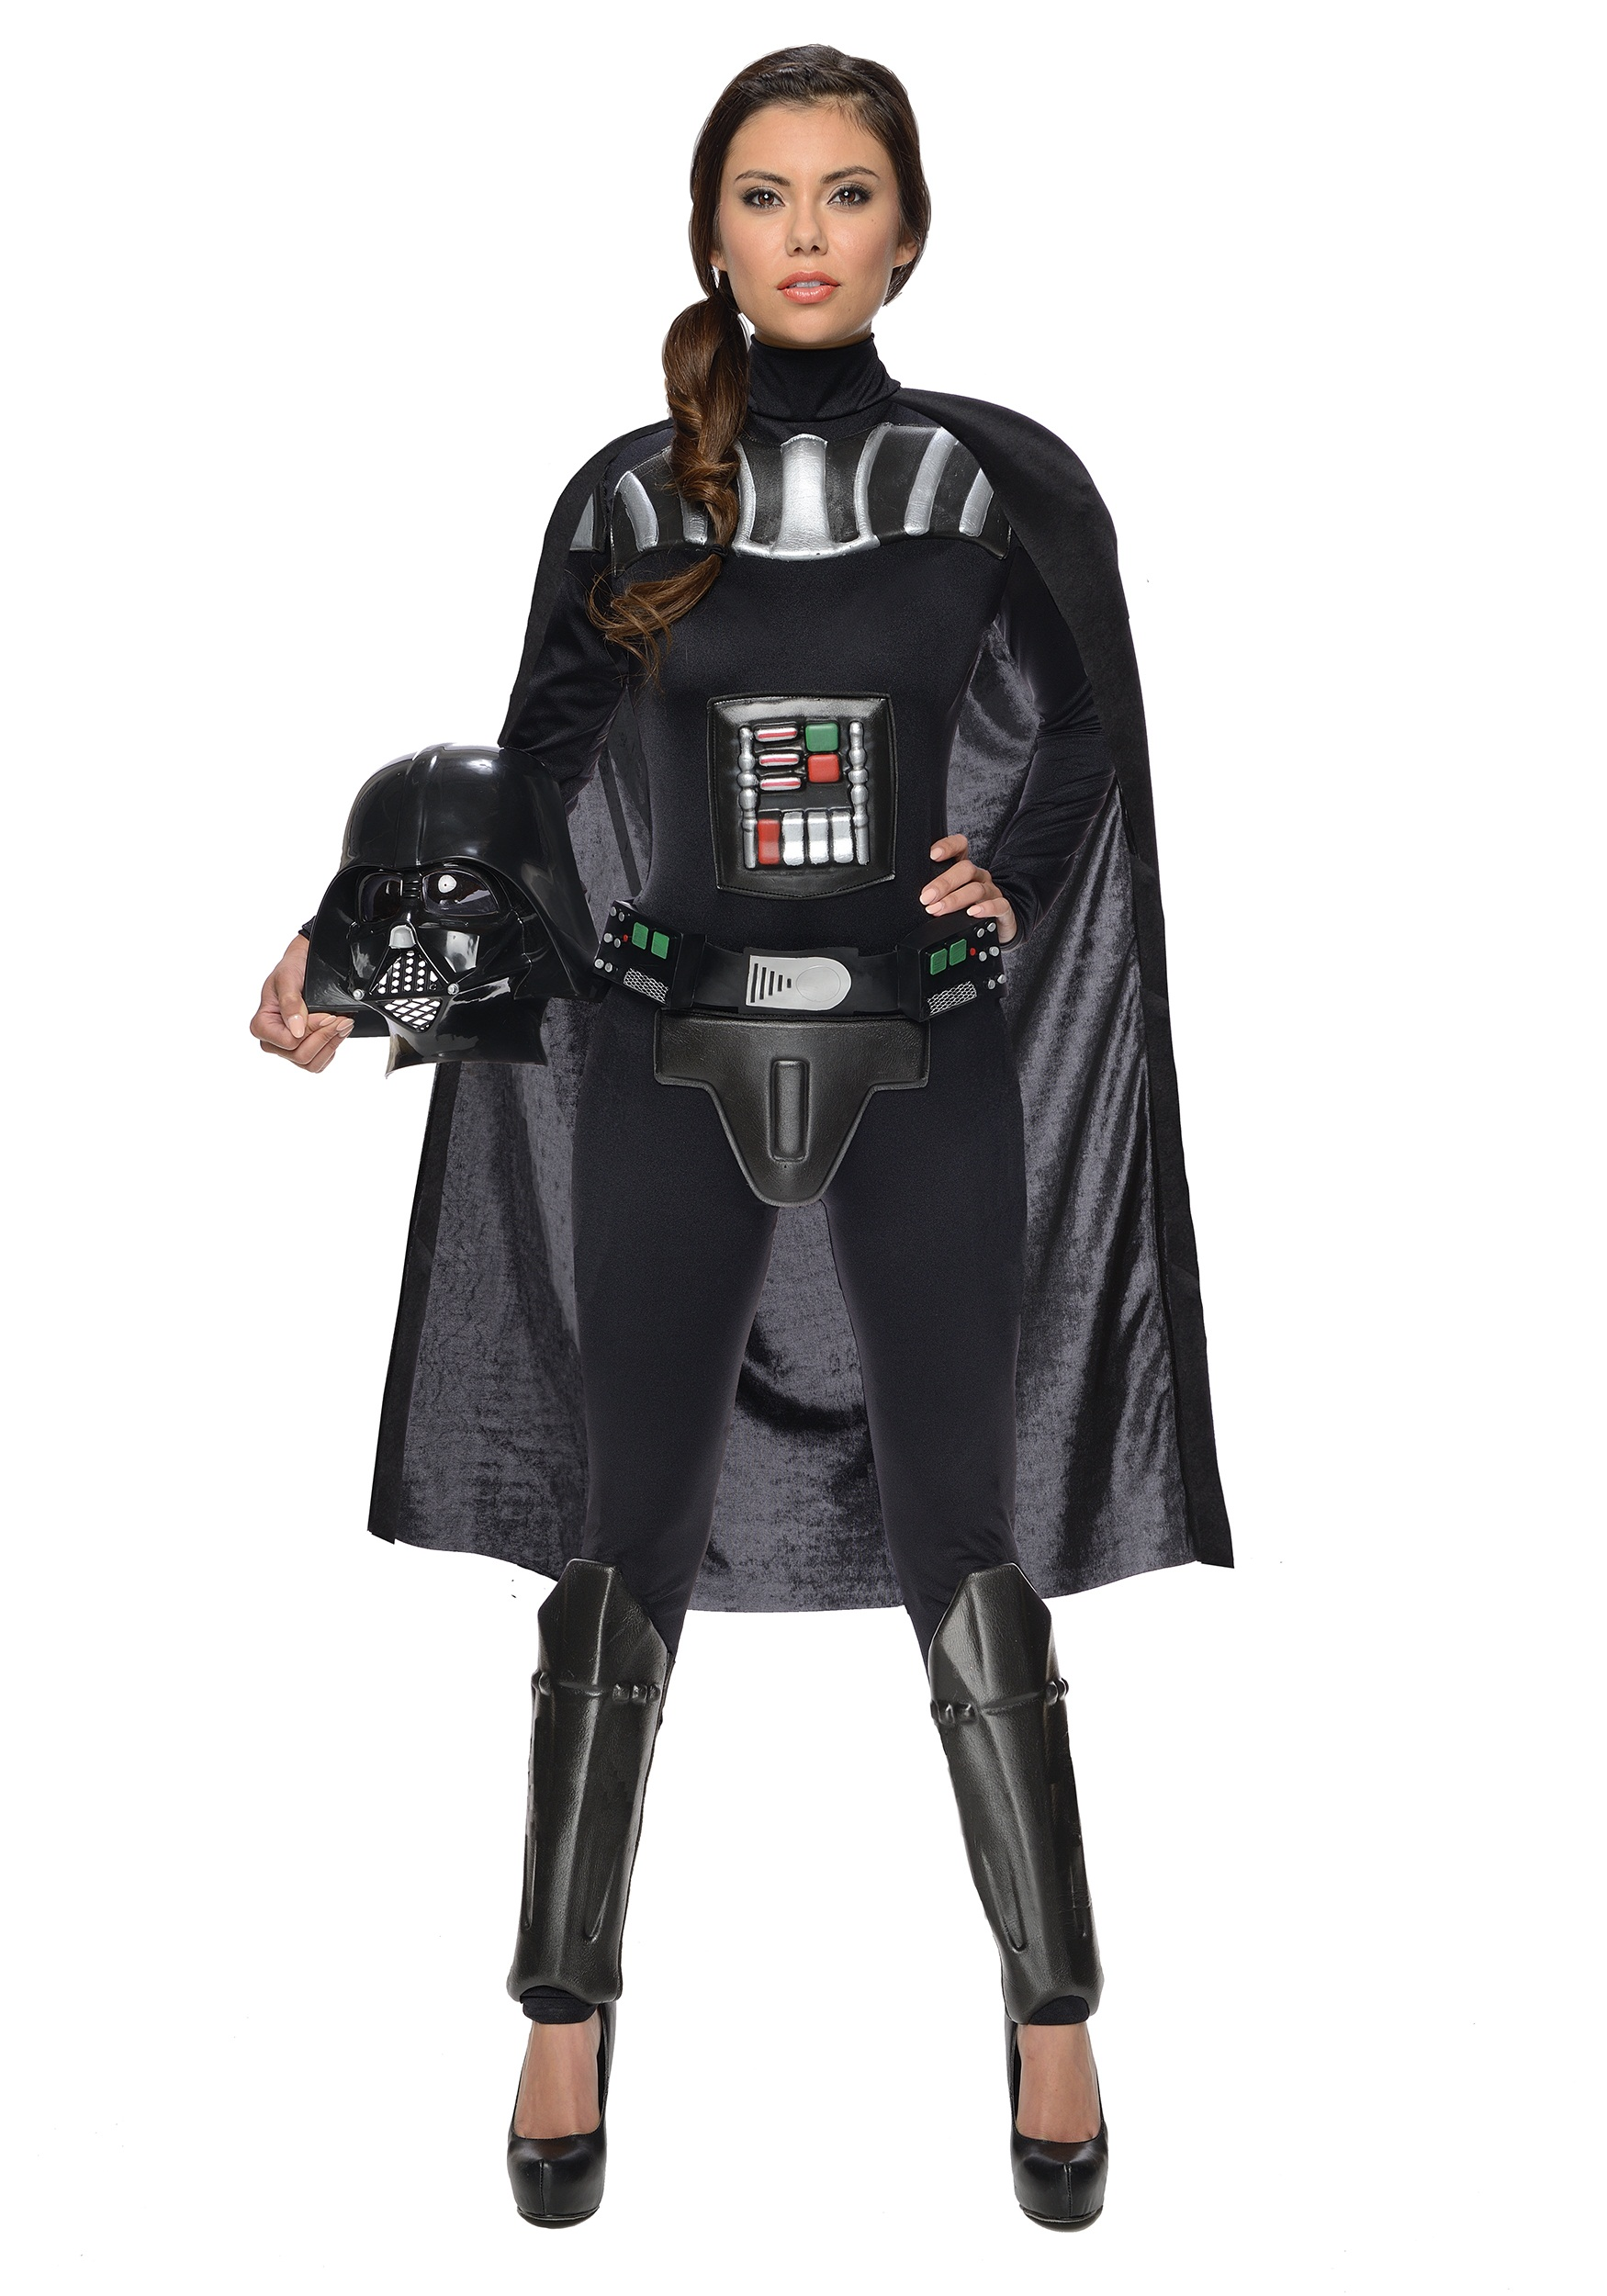 Star Wars Female Darth Vader Bodysuit RU887594